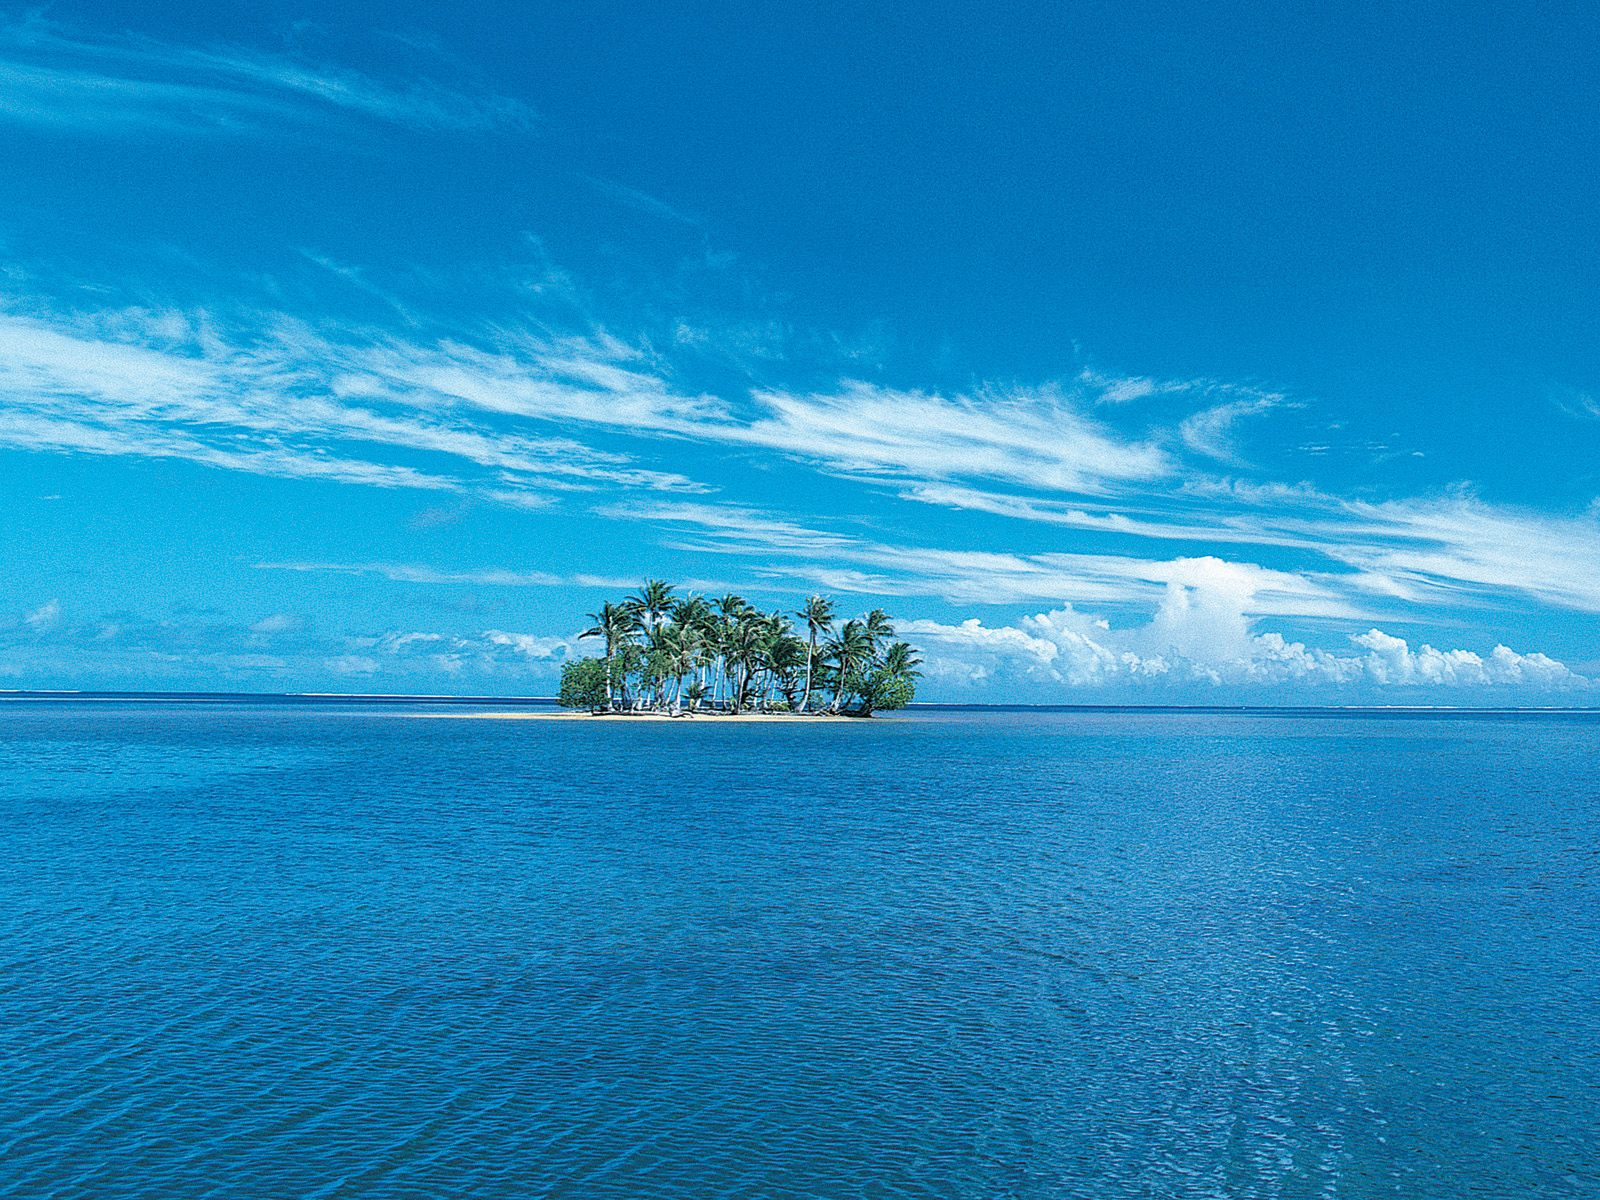 1600x1200 Isolated island desktop PC and Mac wallpaper 1600x1200